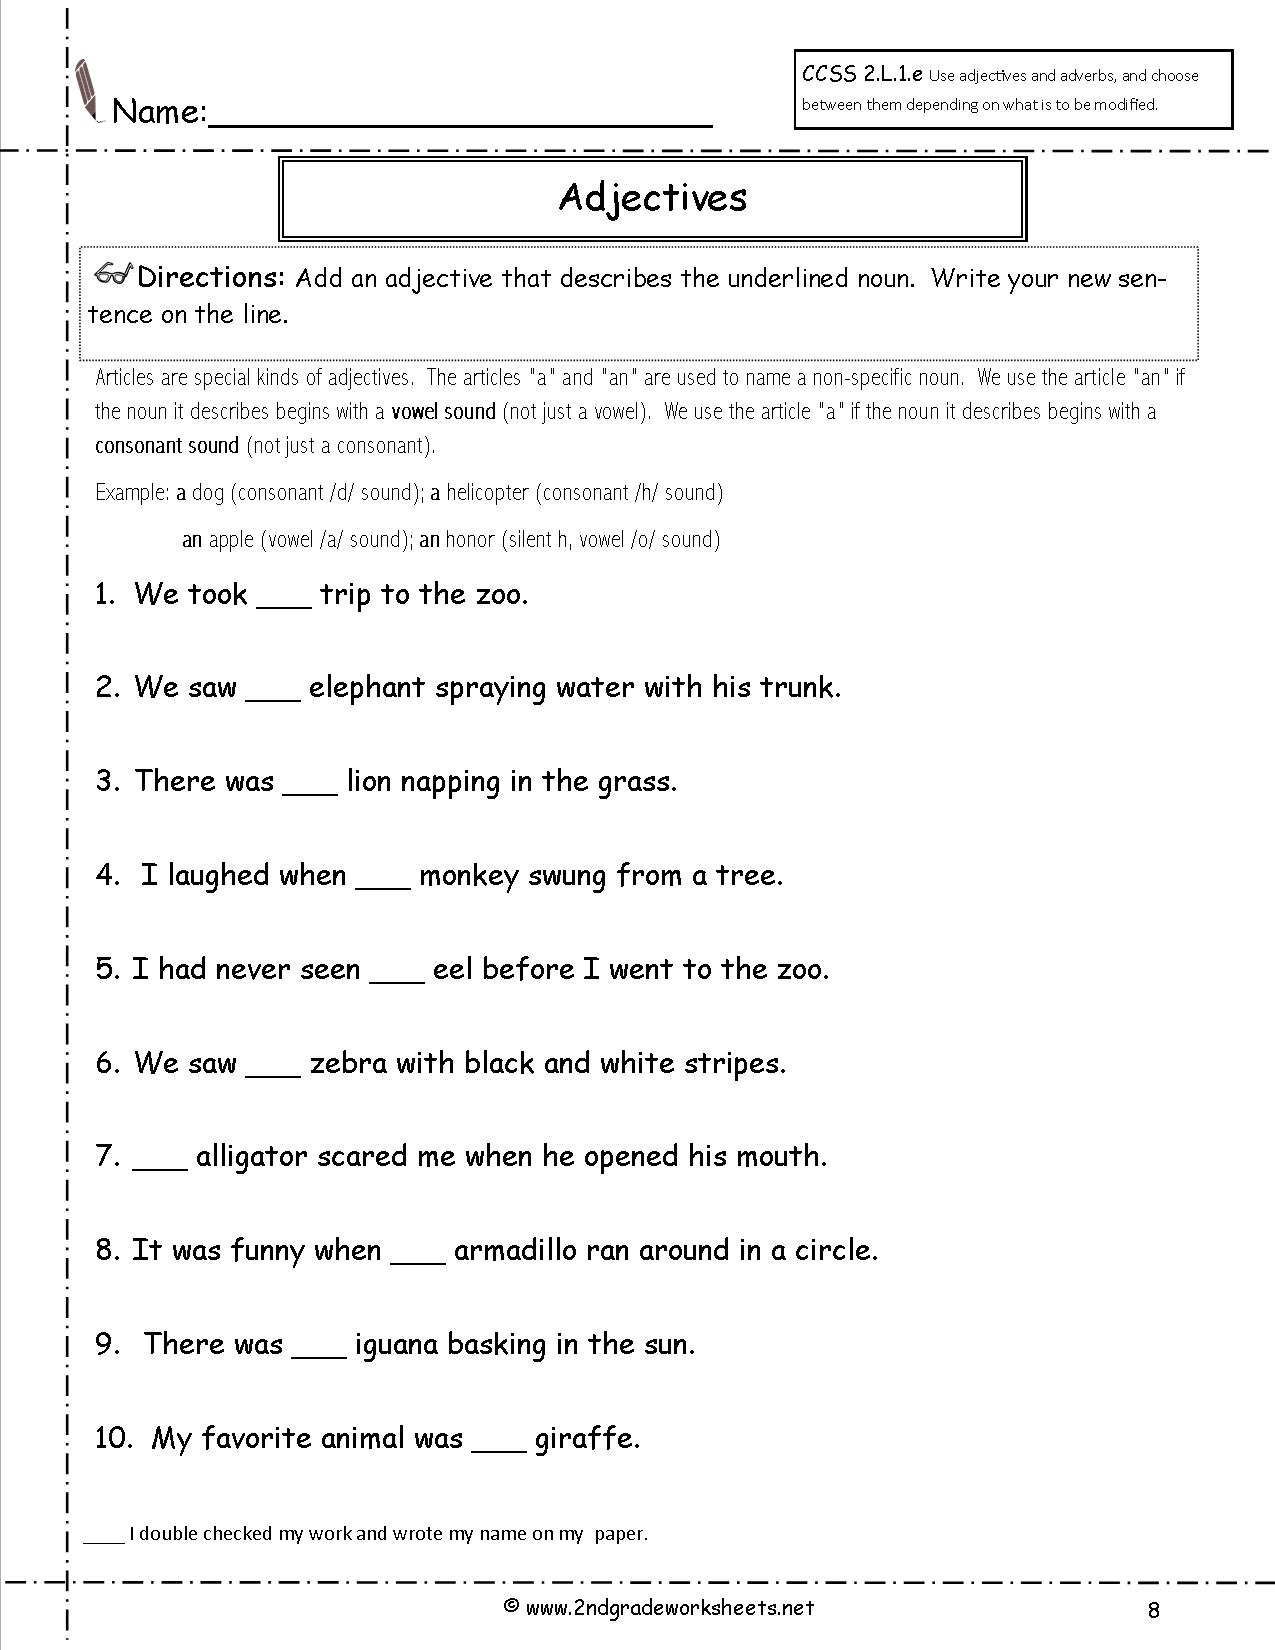 Amazing Classifying Sentences Using Nouns And Verbs Based